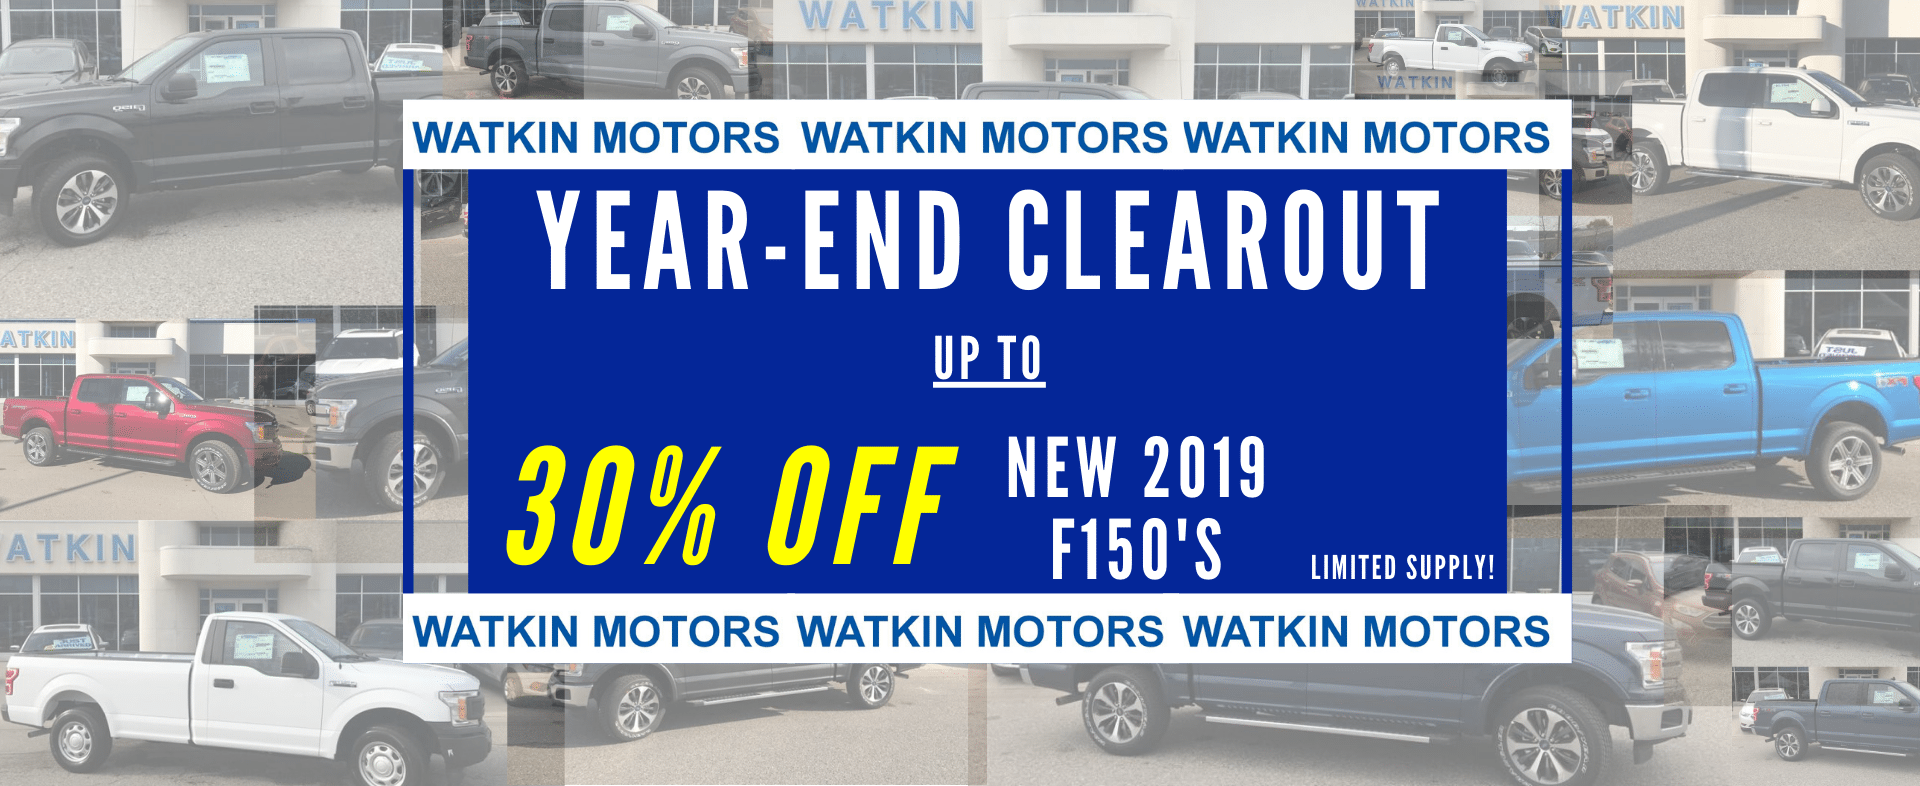 up to 30% off new 2019 F150's